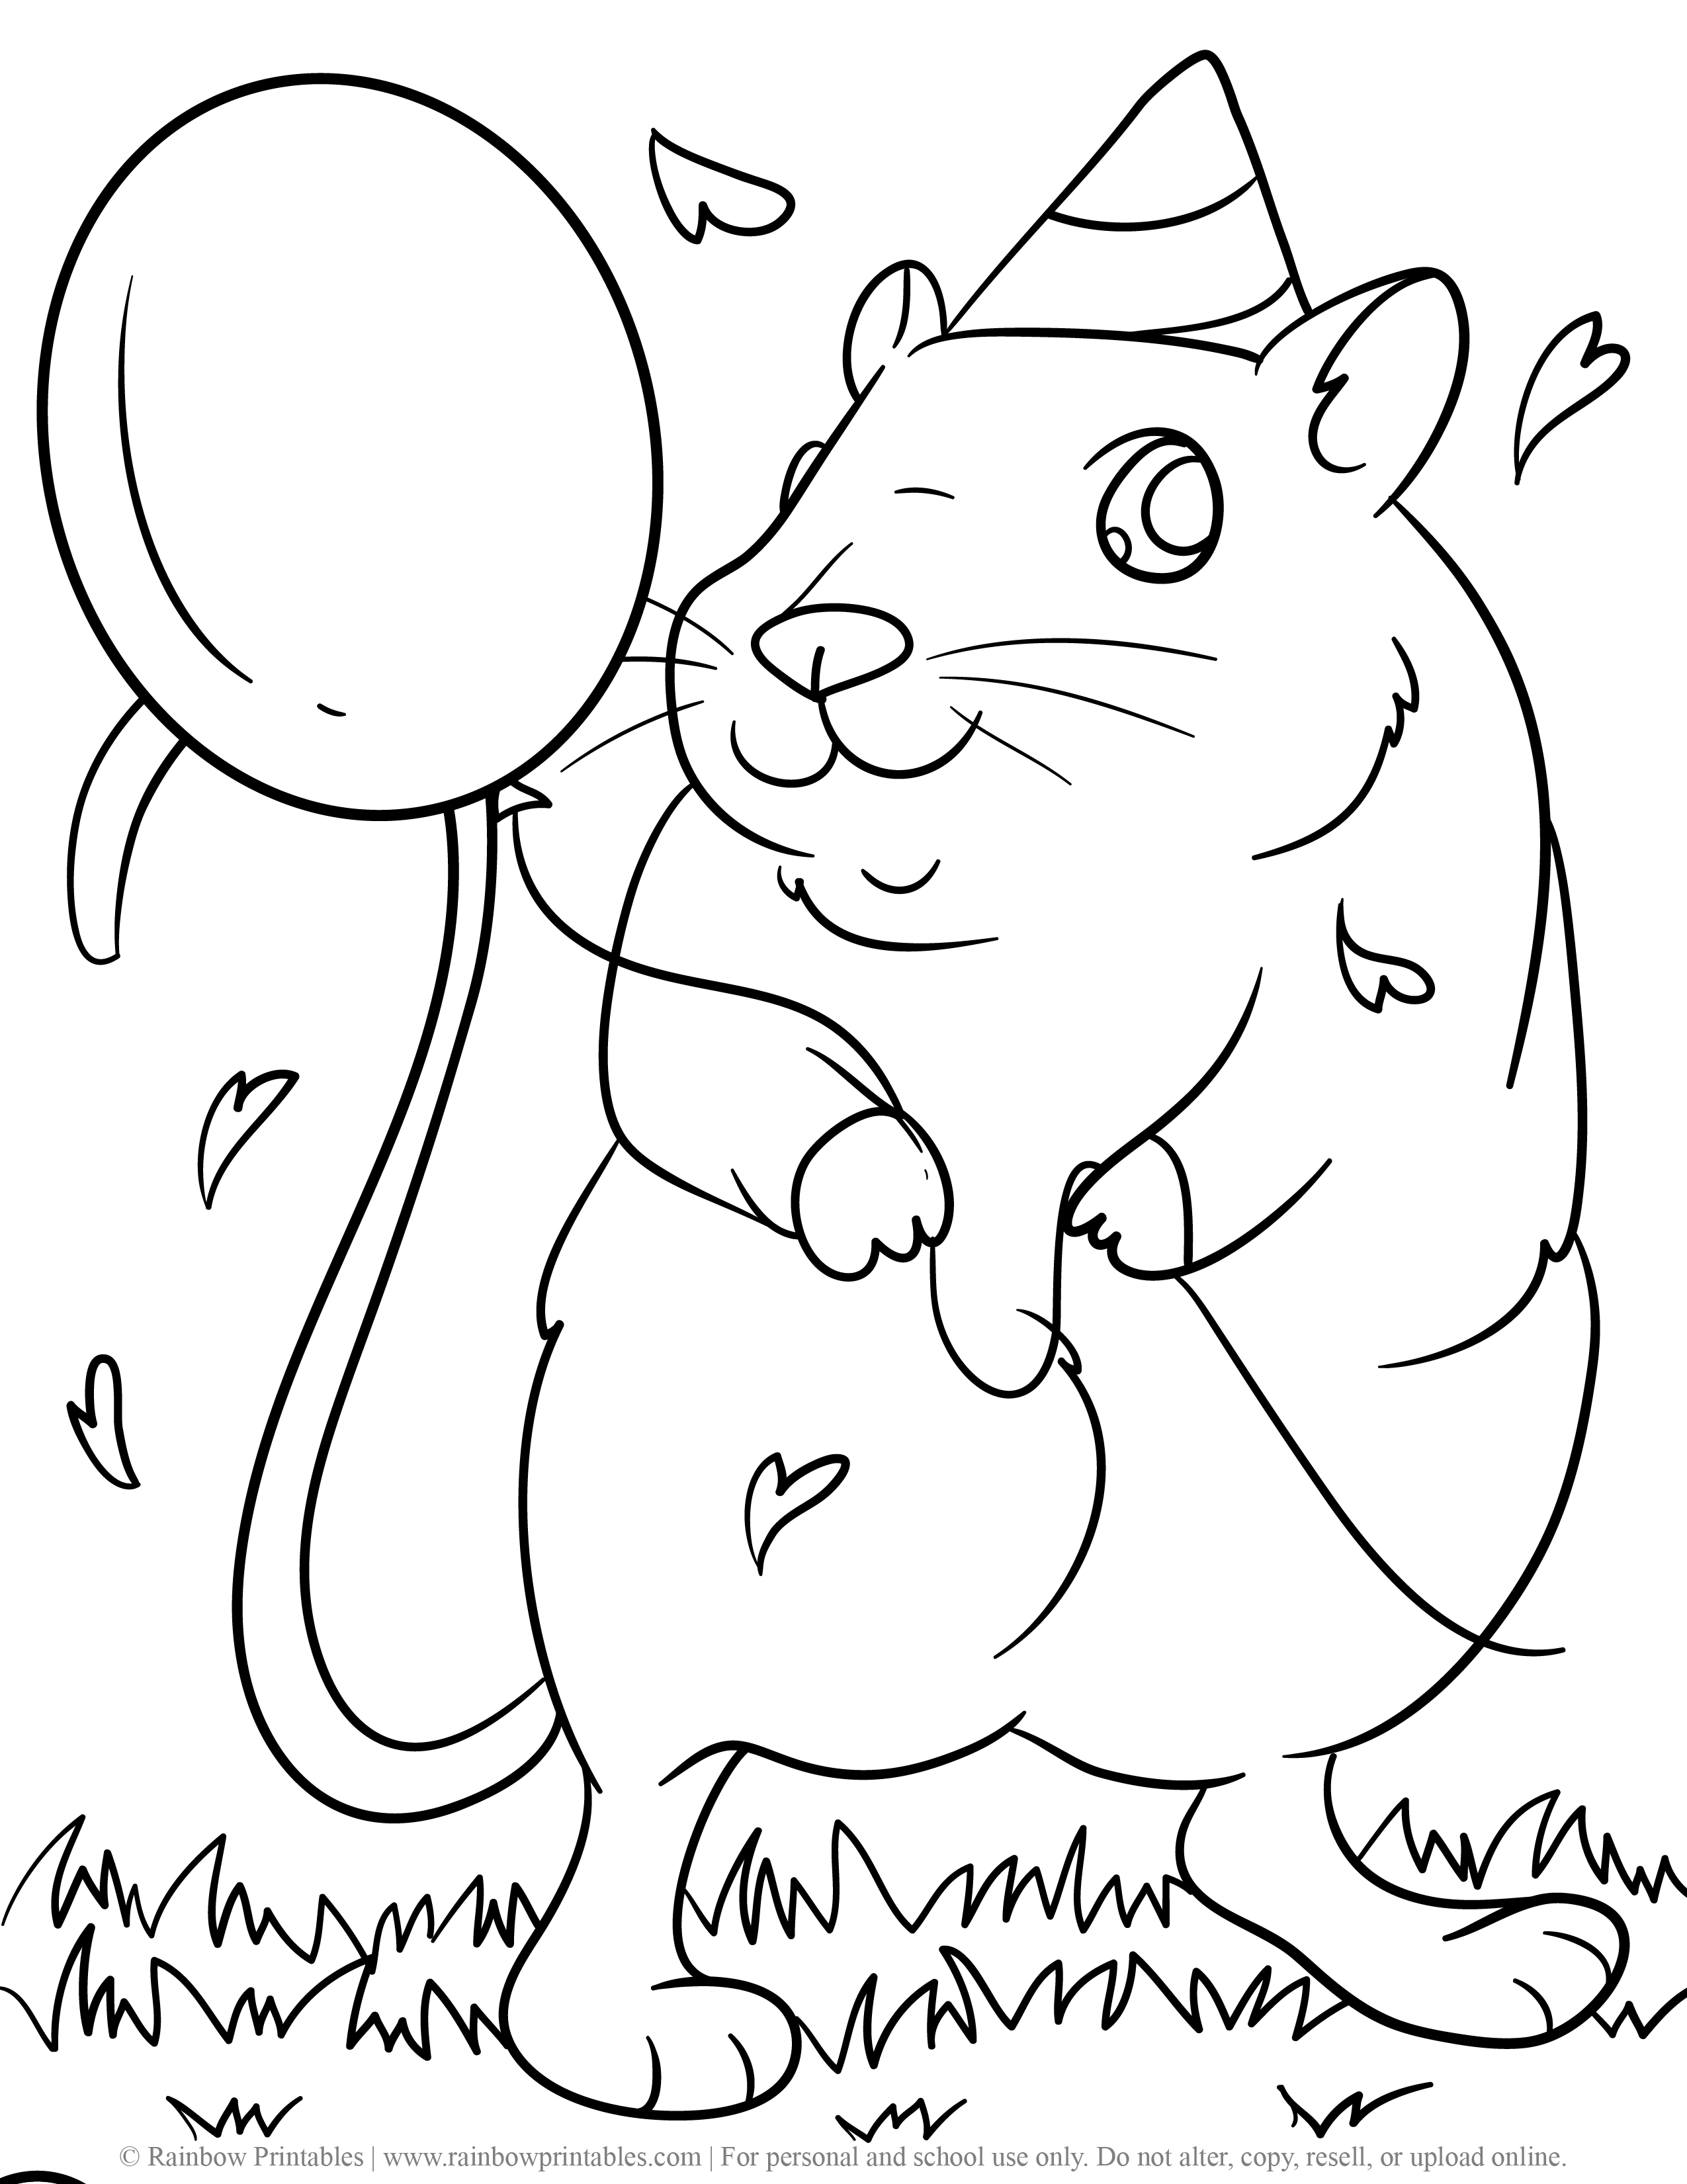 Rodent Rat Mice Hamster Guinea Pig Coloring Page for Kids Pets Birthday Holding Balloon Celebration